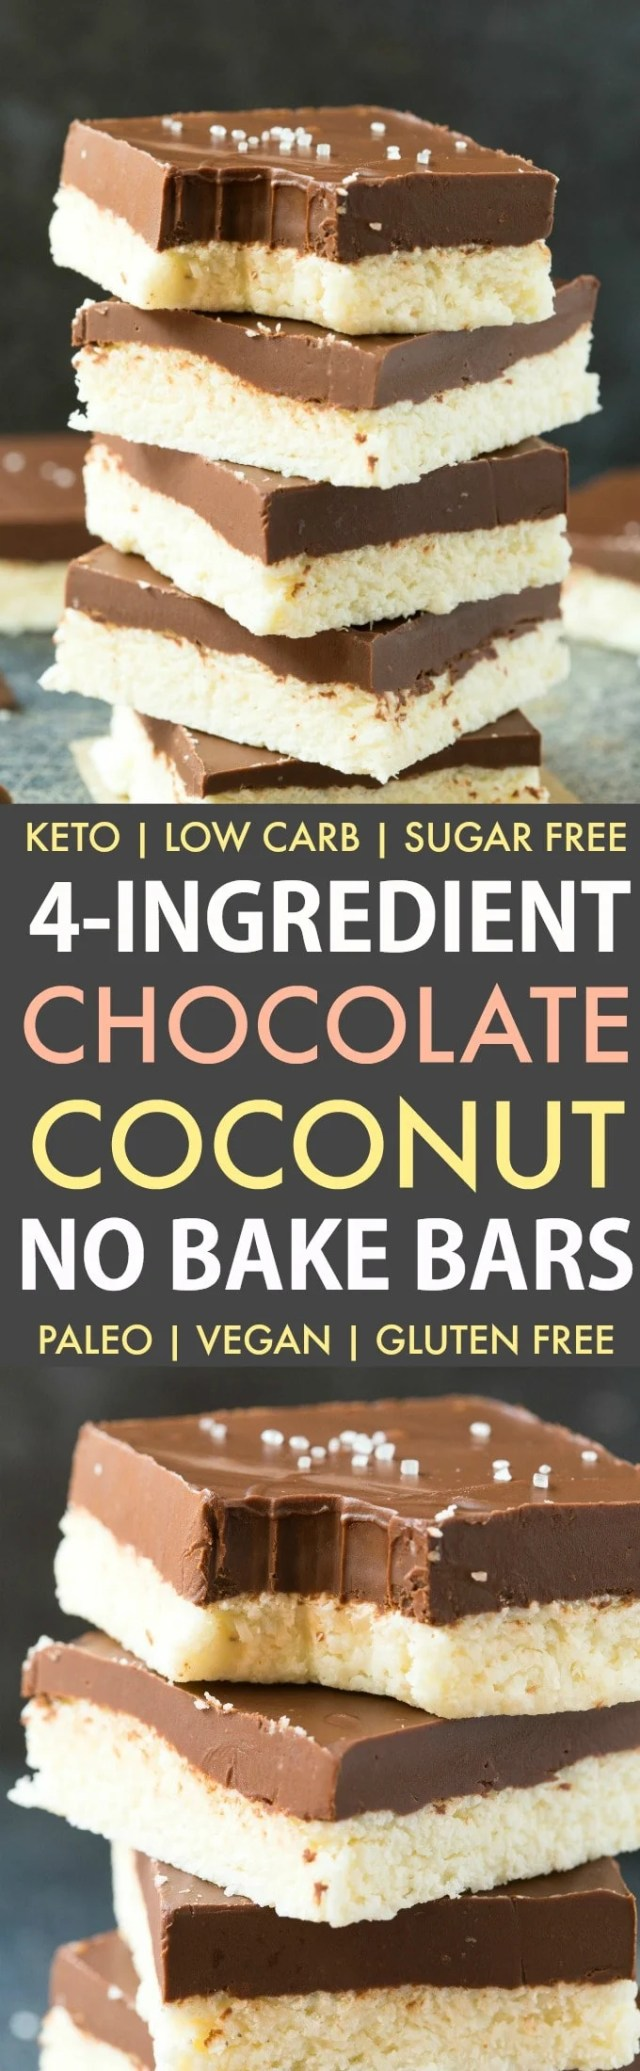 Healthy 4-Ingredient Paleo Vegan Chocolate Coconut Bars